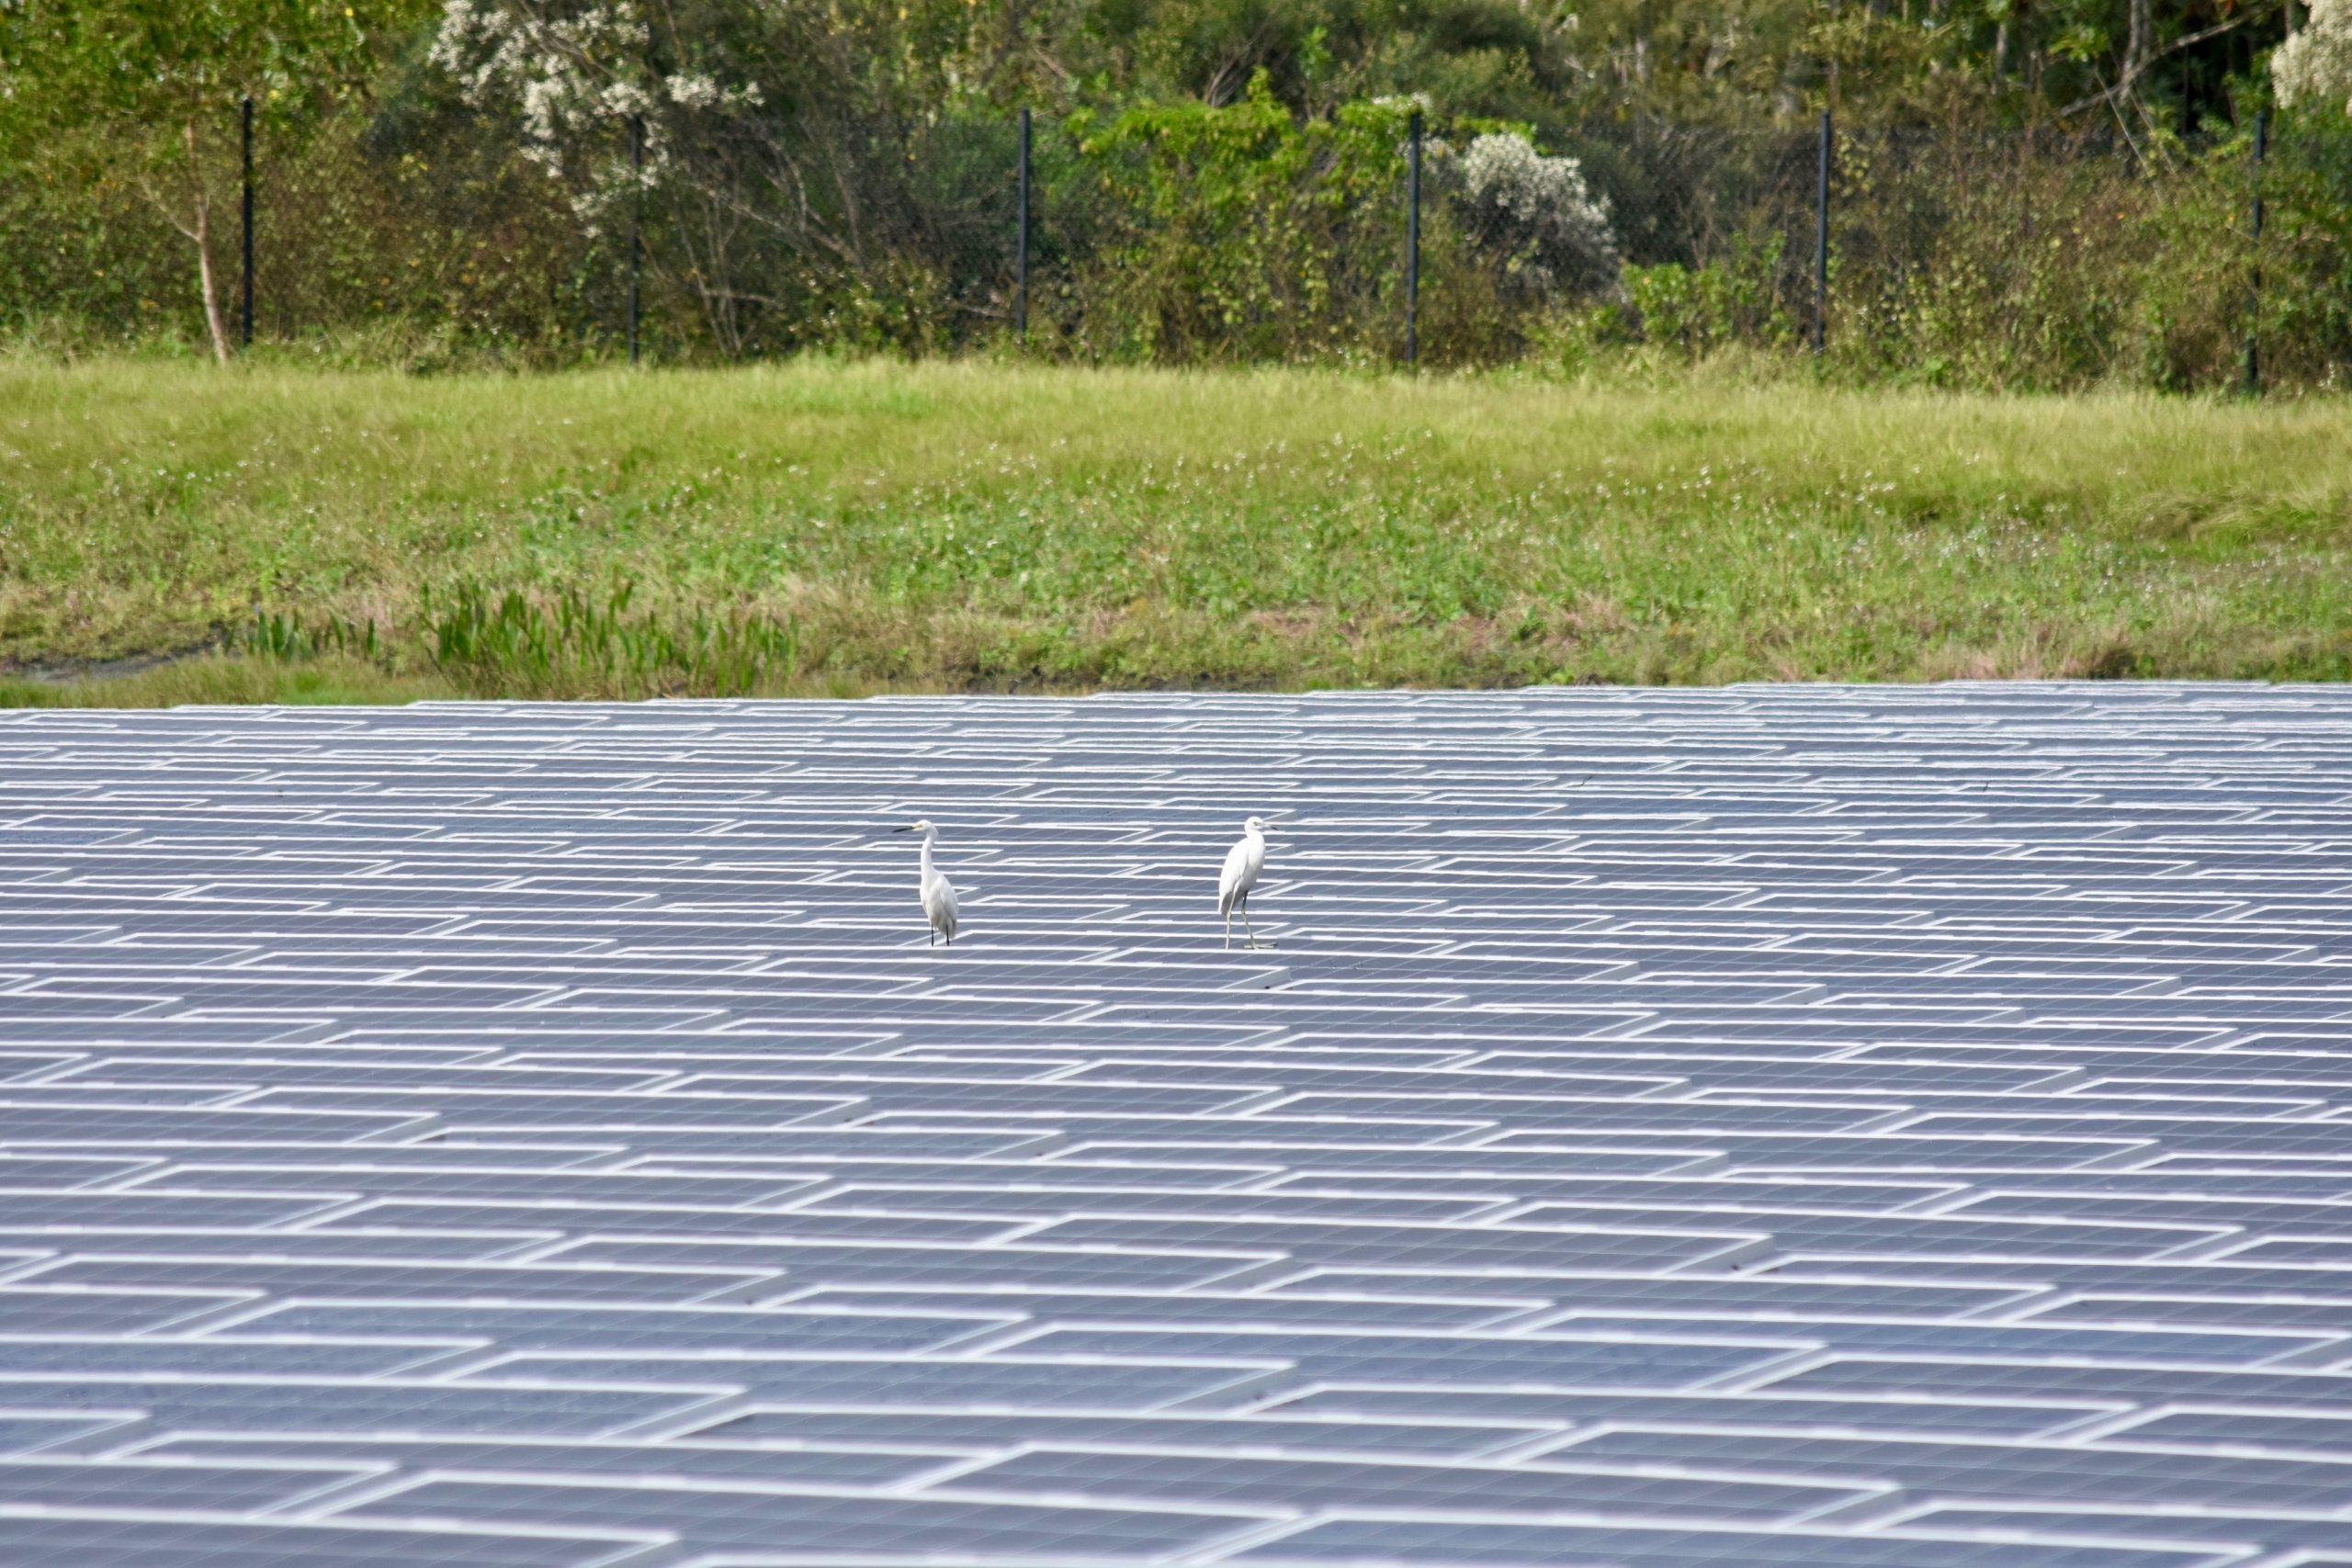 , Roadmap to Renewables Unites Climate and Sustainability Goals, The Circular Economy